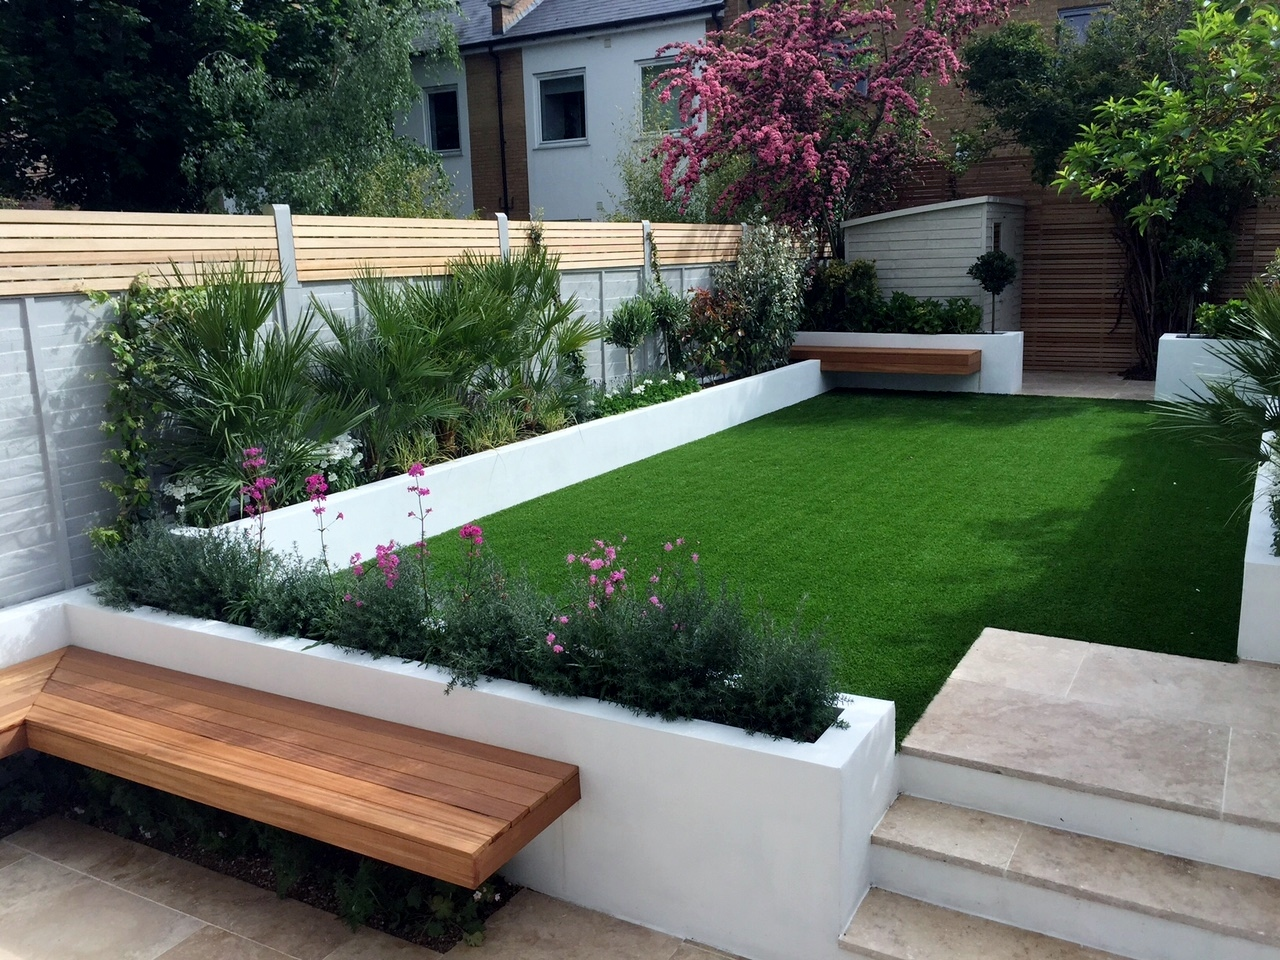 Modern garden design ideas fulham chelsea battersea for Modern garden ideas